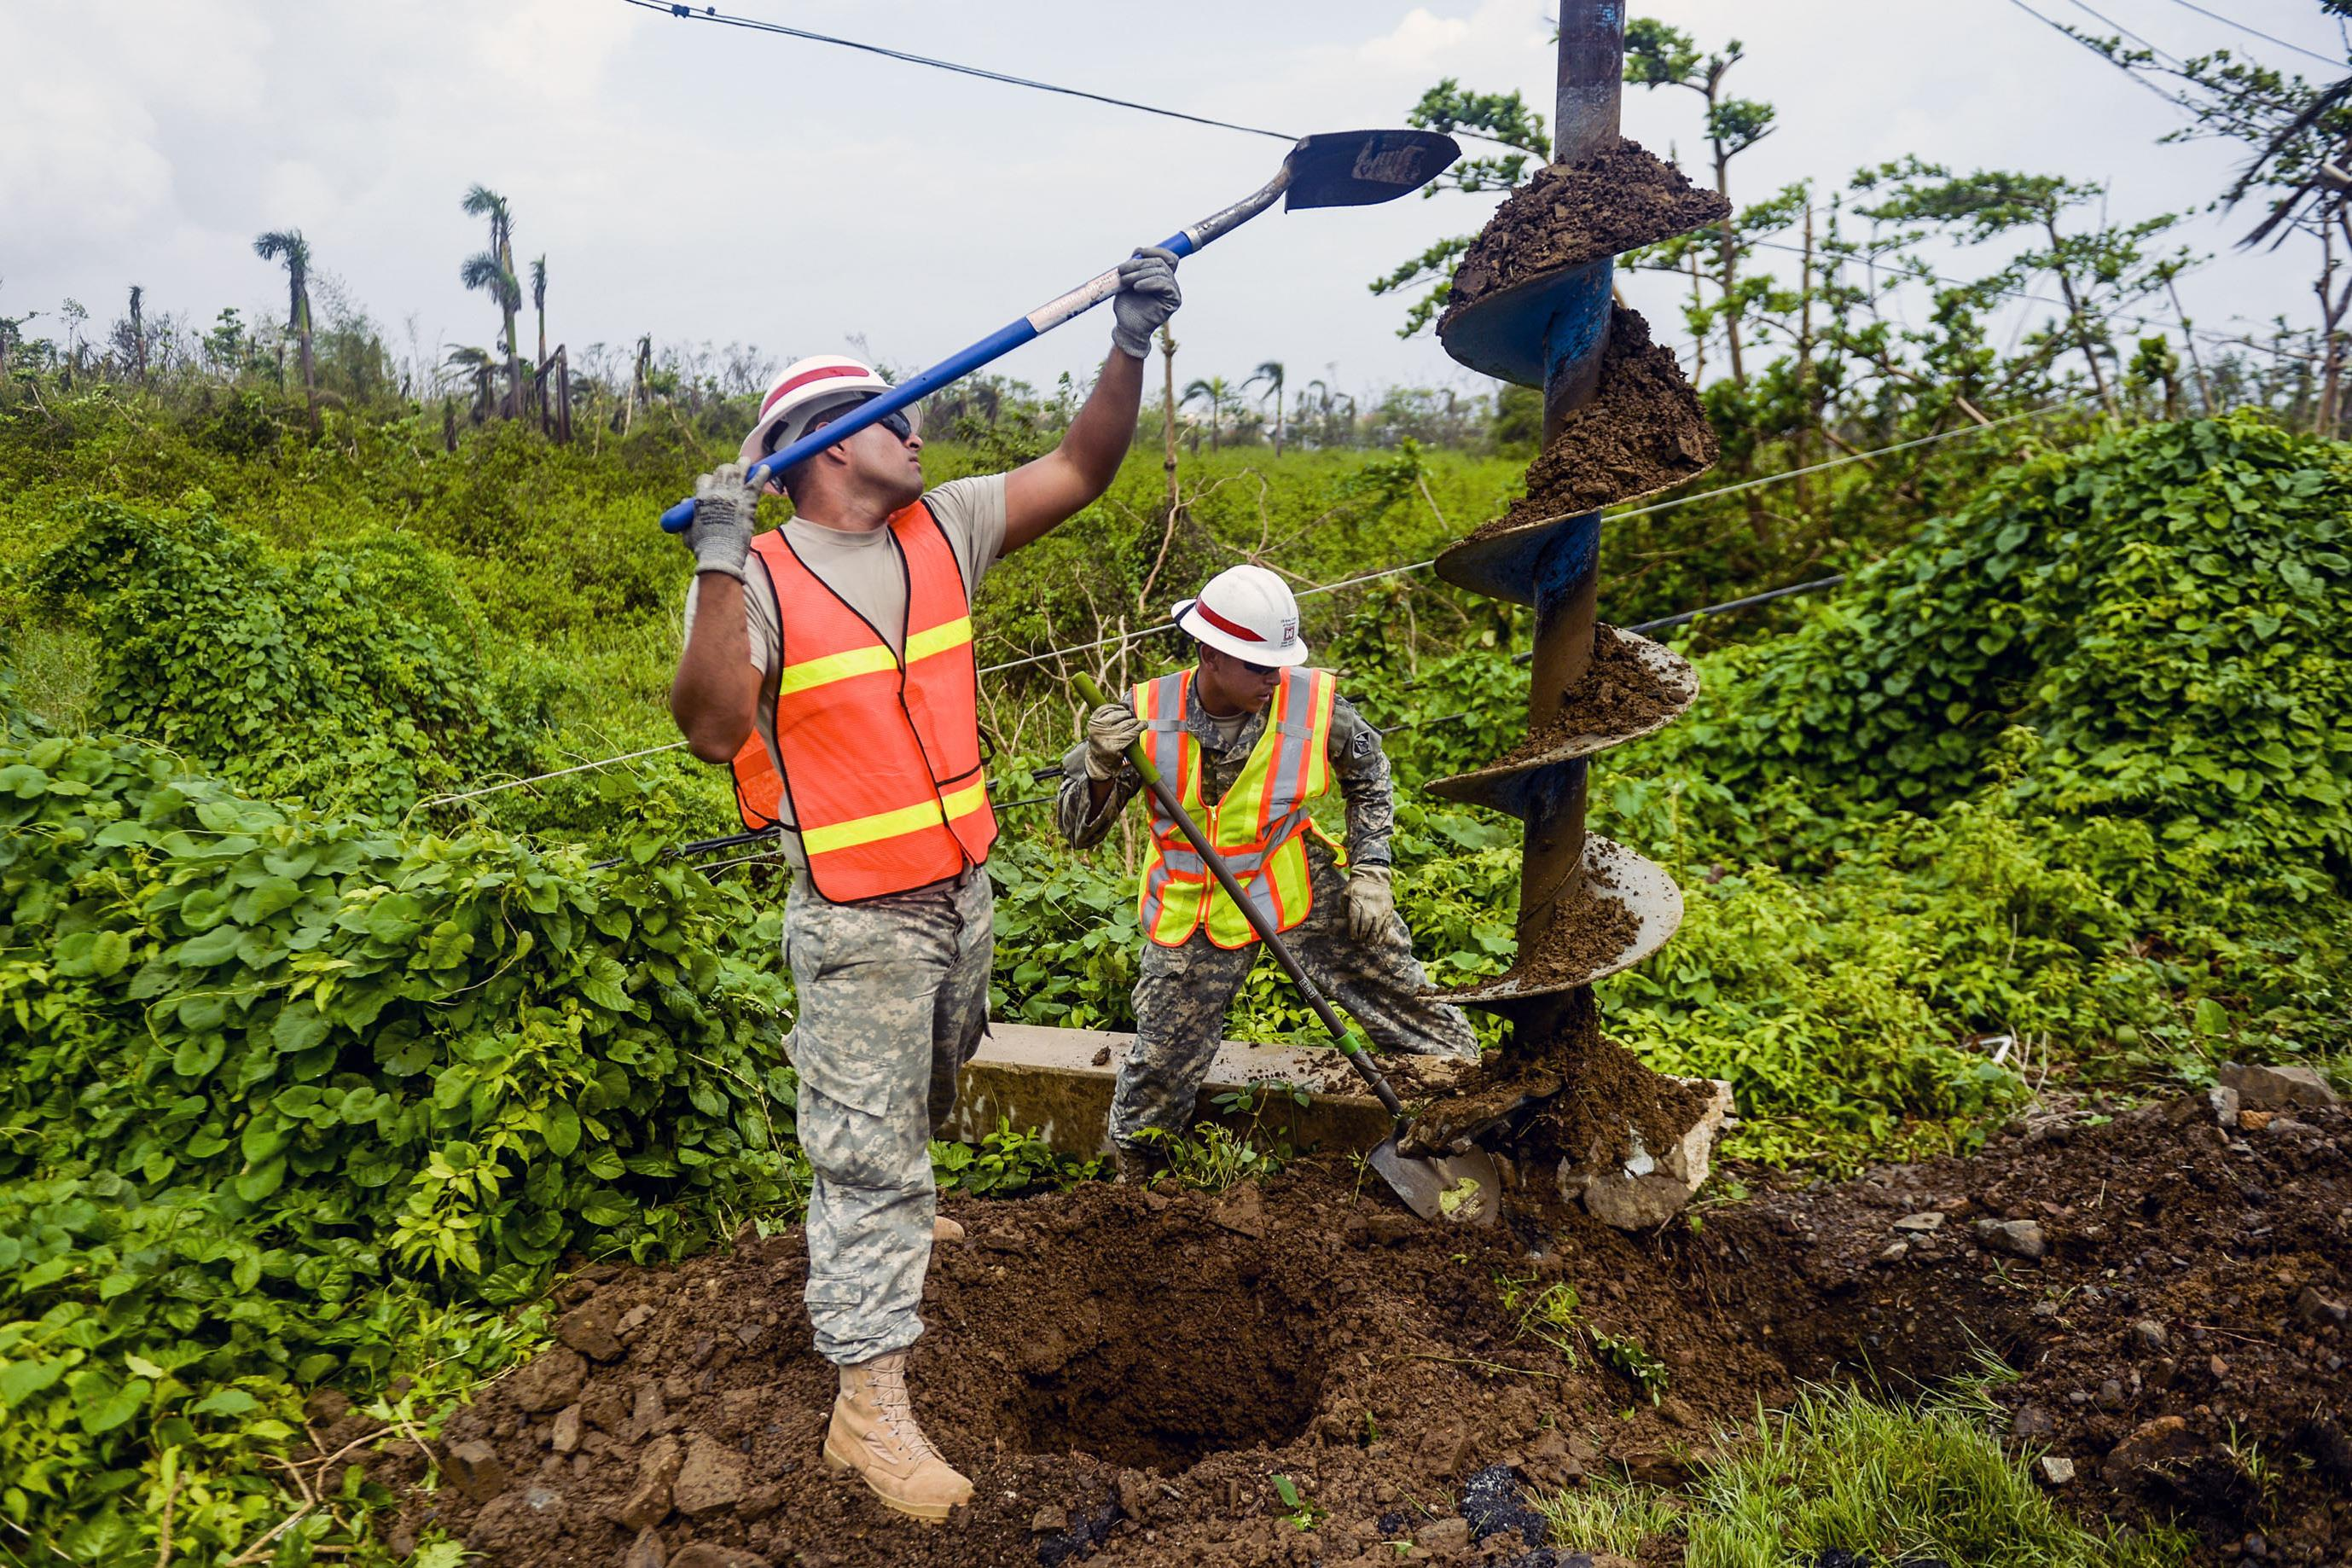 Luis Ruiz, left, and Jonathan Quinonez clean the dirt off an auger as they dig a hole to place a concrete power pole in Rio Grande, Puerto Rico